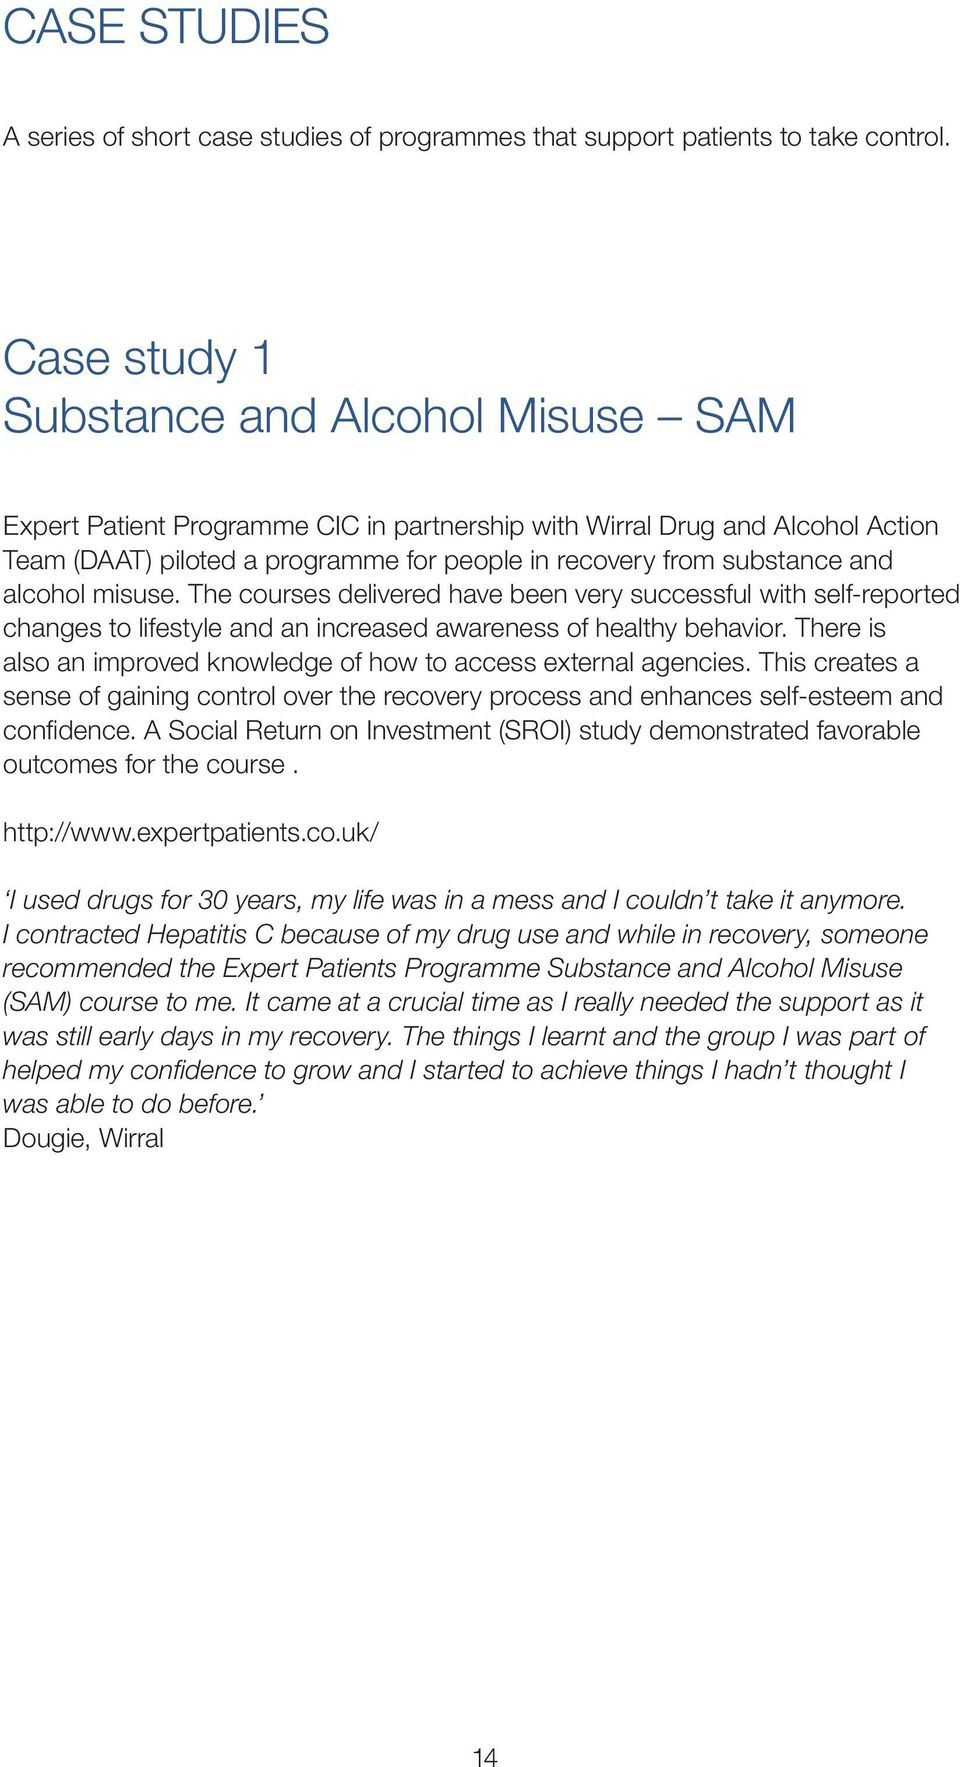 alcohol misuse. The courses delivered have been very successful with self-reported changes to lifestyle and an increased awareness of healthy behavior.